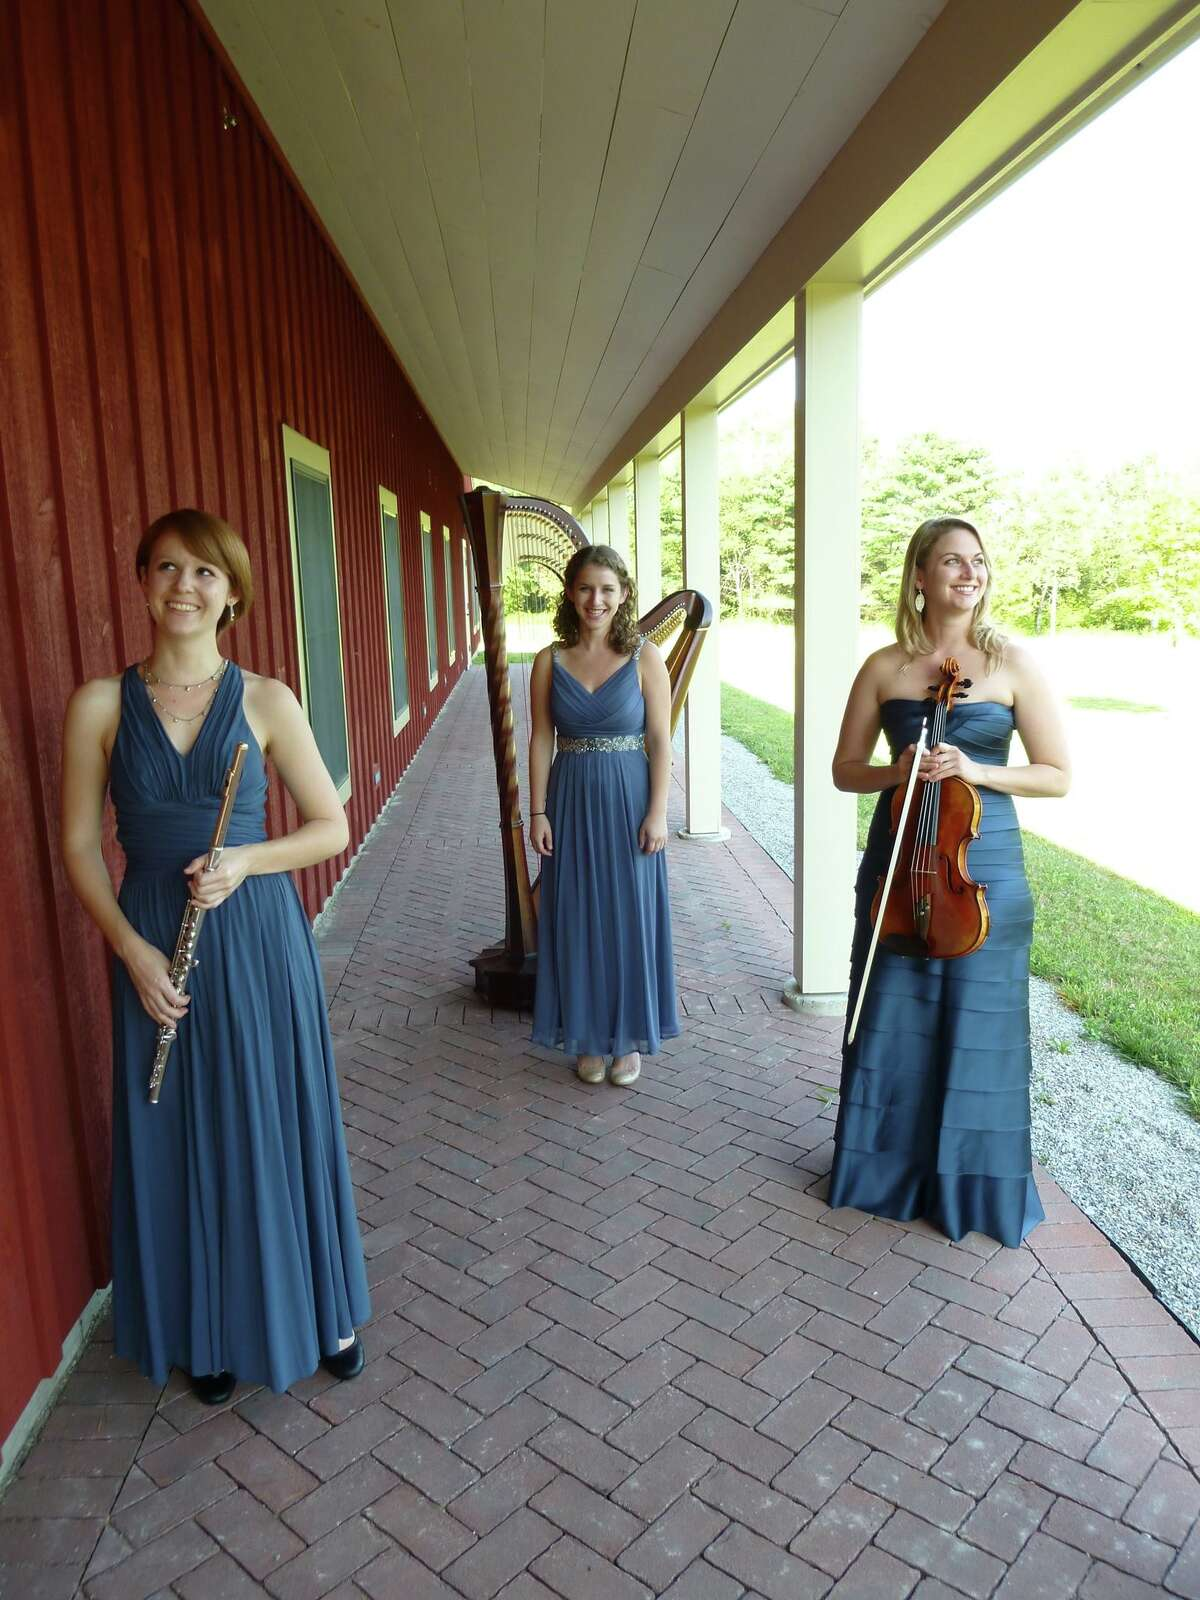 The Deciduous Trio of flutist Amulet Strange, from left, harpist Hope Cowan and violist Stephanie Meintka will open the 2015-16 season of the Phil Kramer Recital Series at New Hope Lutheran Church.